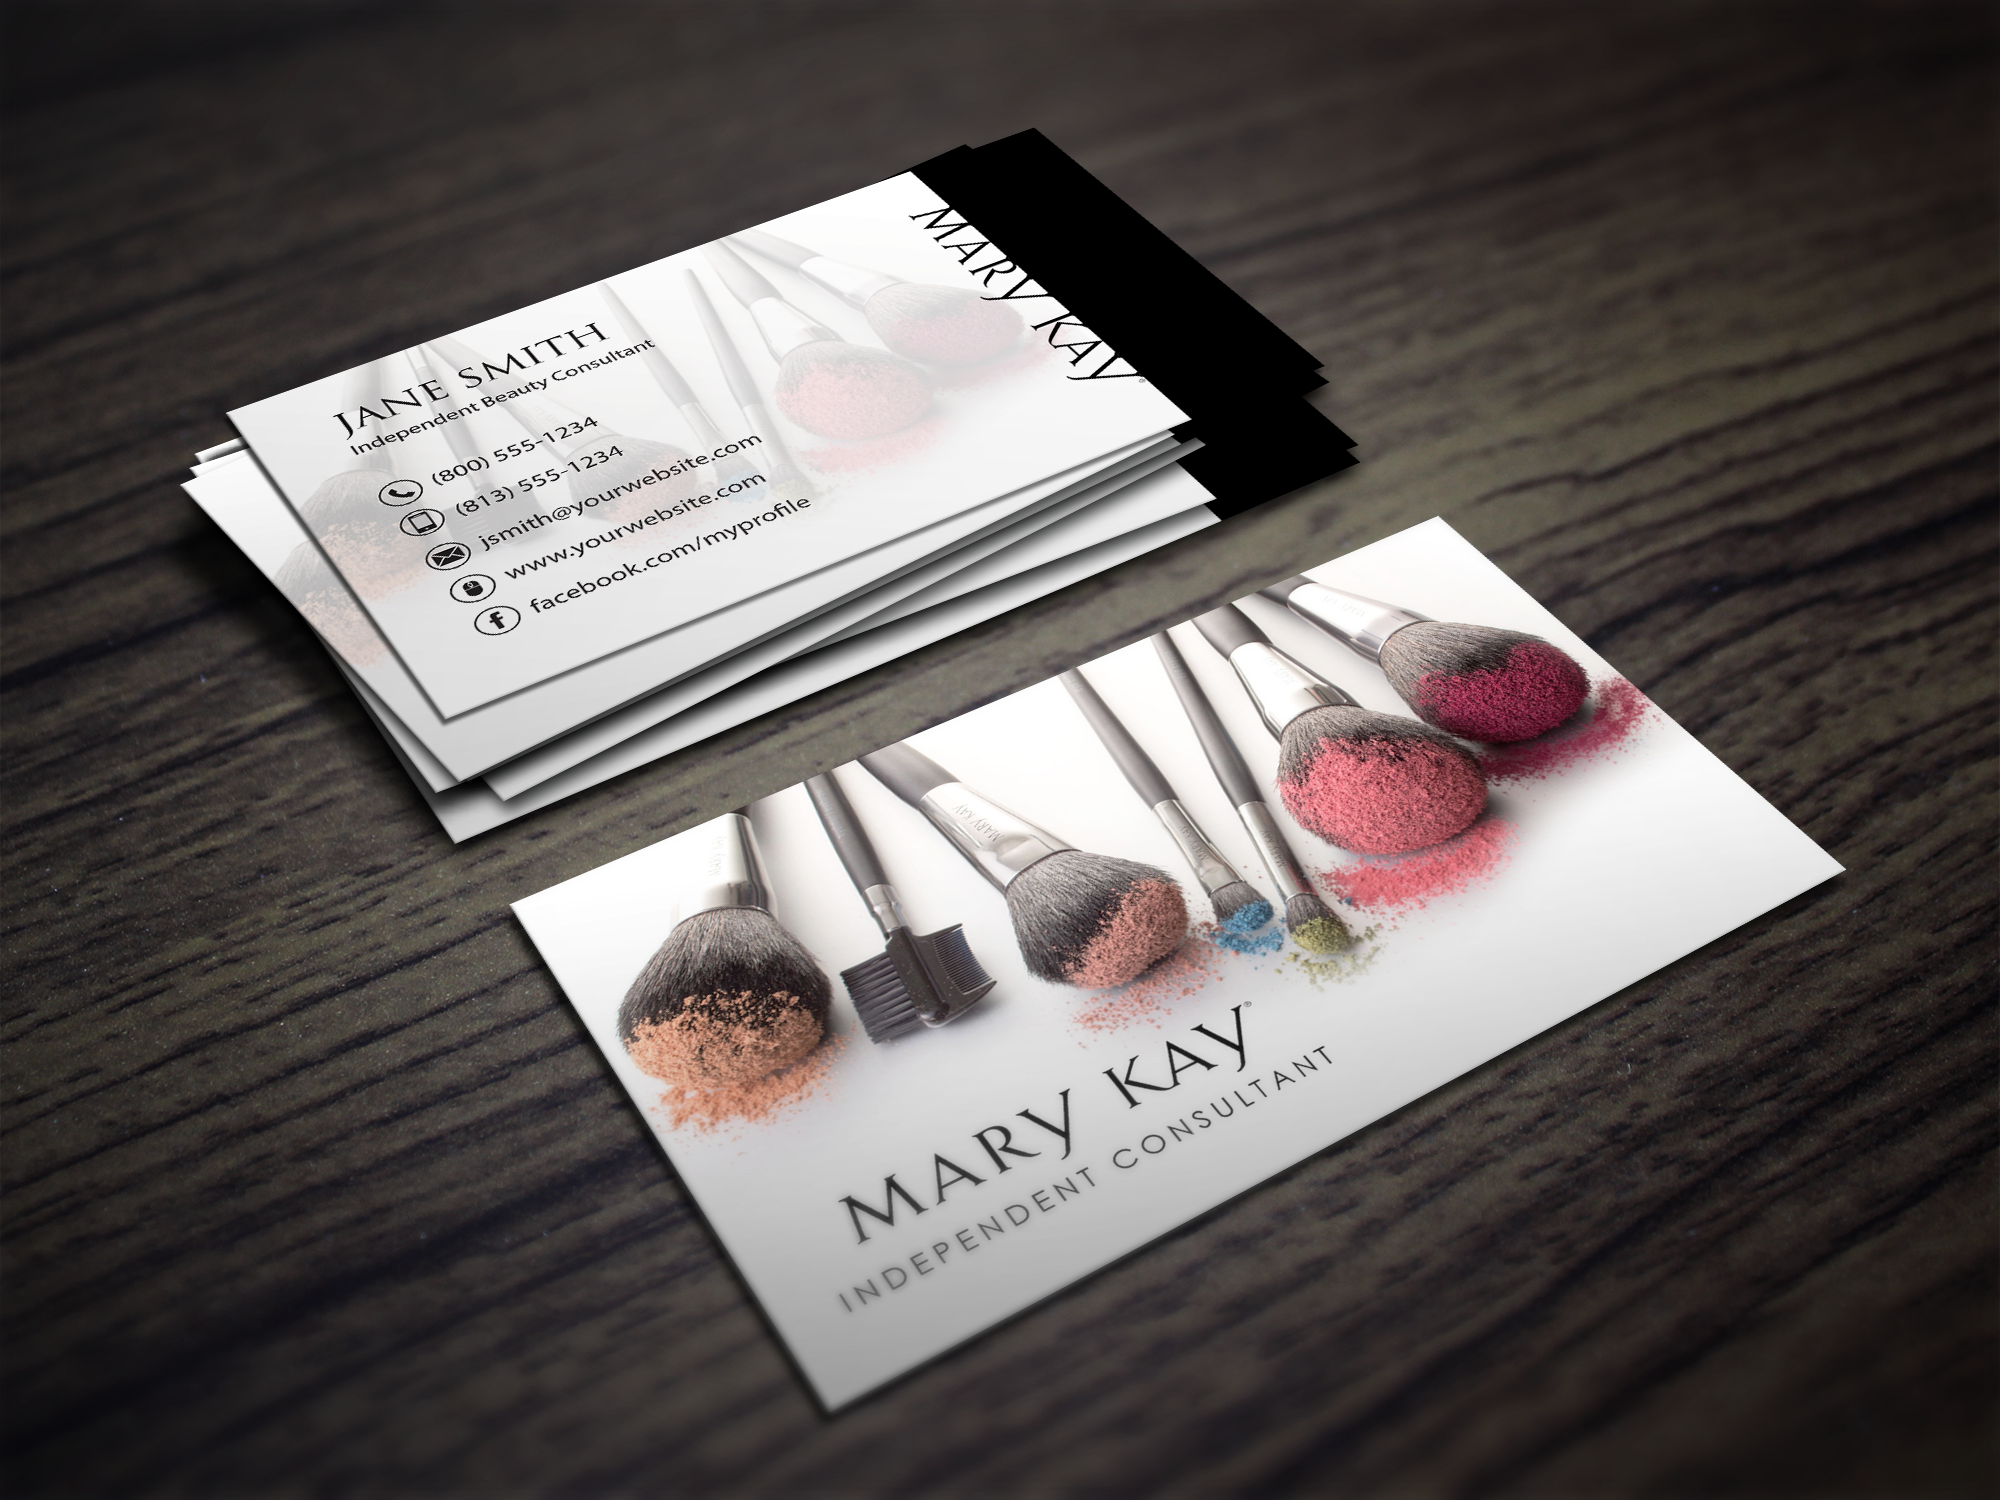 Makeup business card design for a Mary Kay rep expanding client ...